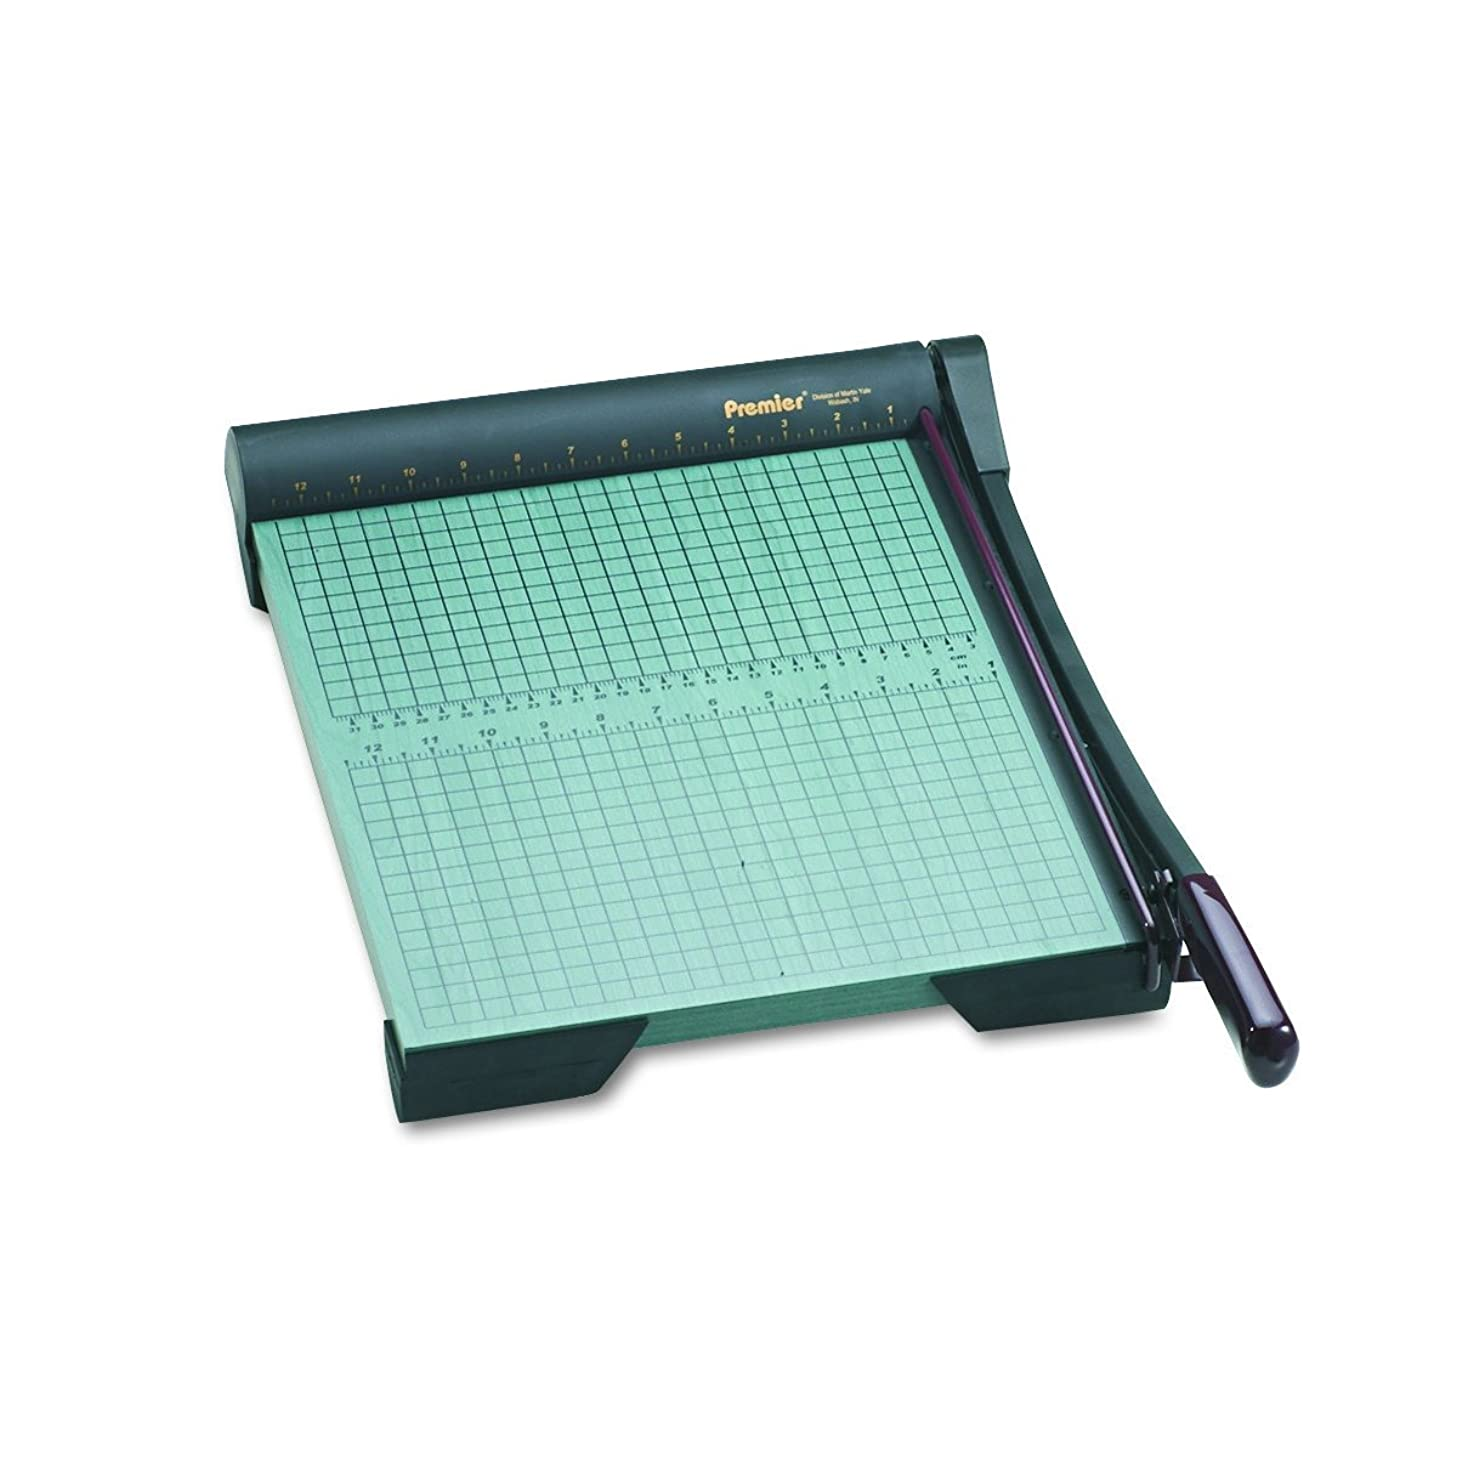 Martin Yale W15 Premier Heavy-Duty Green Board Wood Trimmer, Cut Up To 20 Sheets at One Time, Steel Blades, 15 Inches